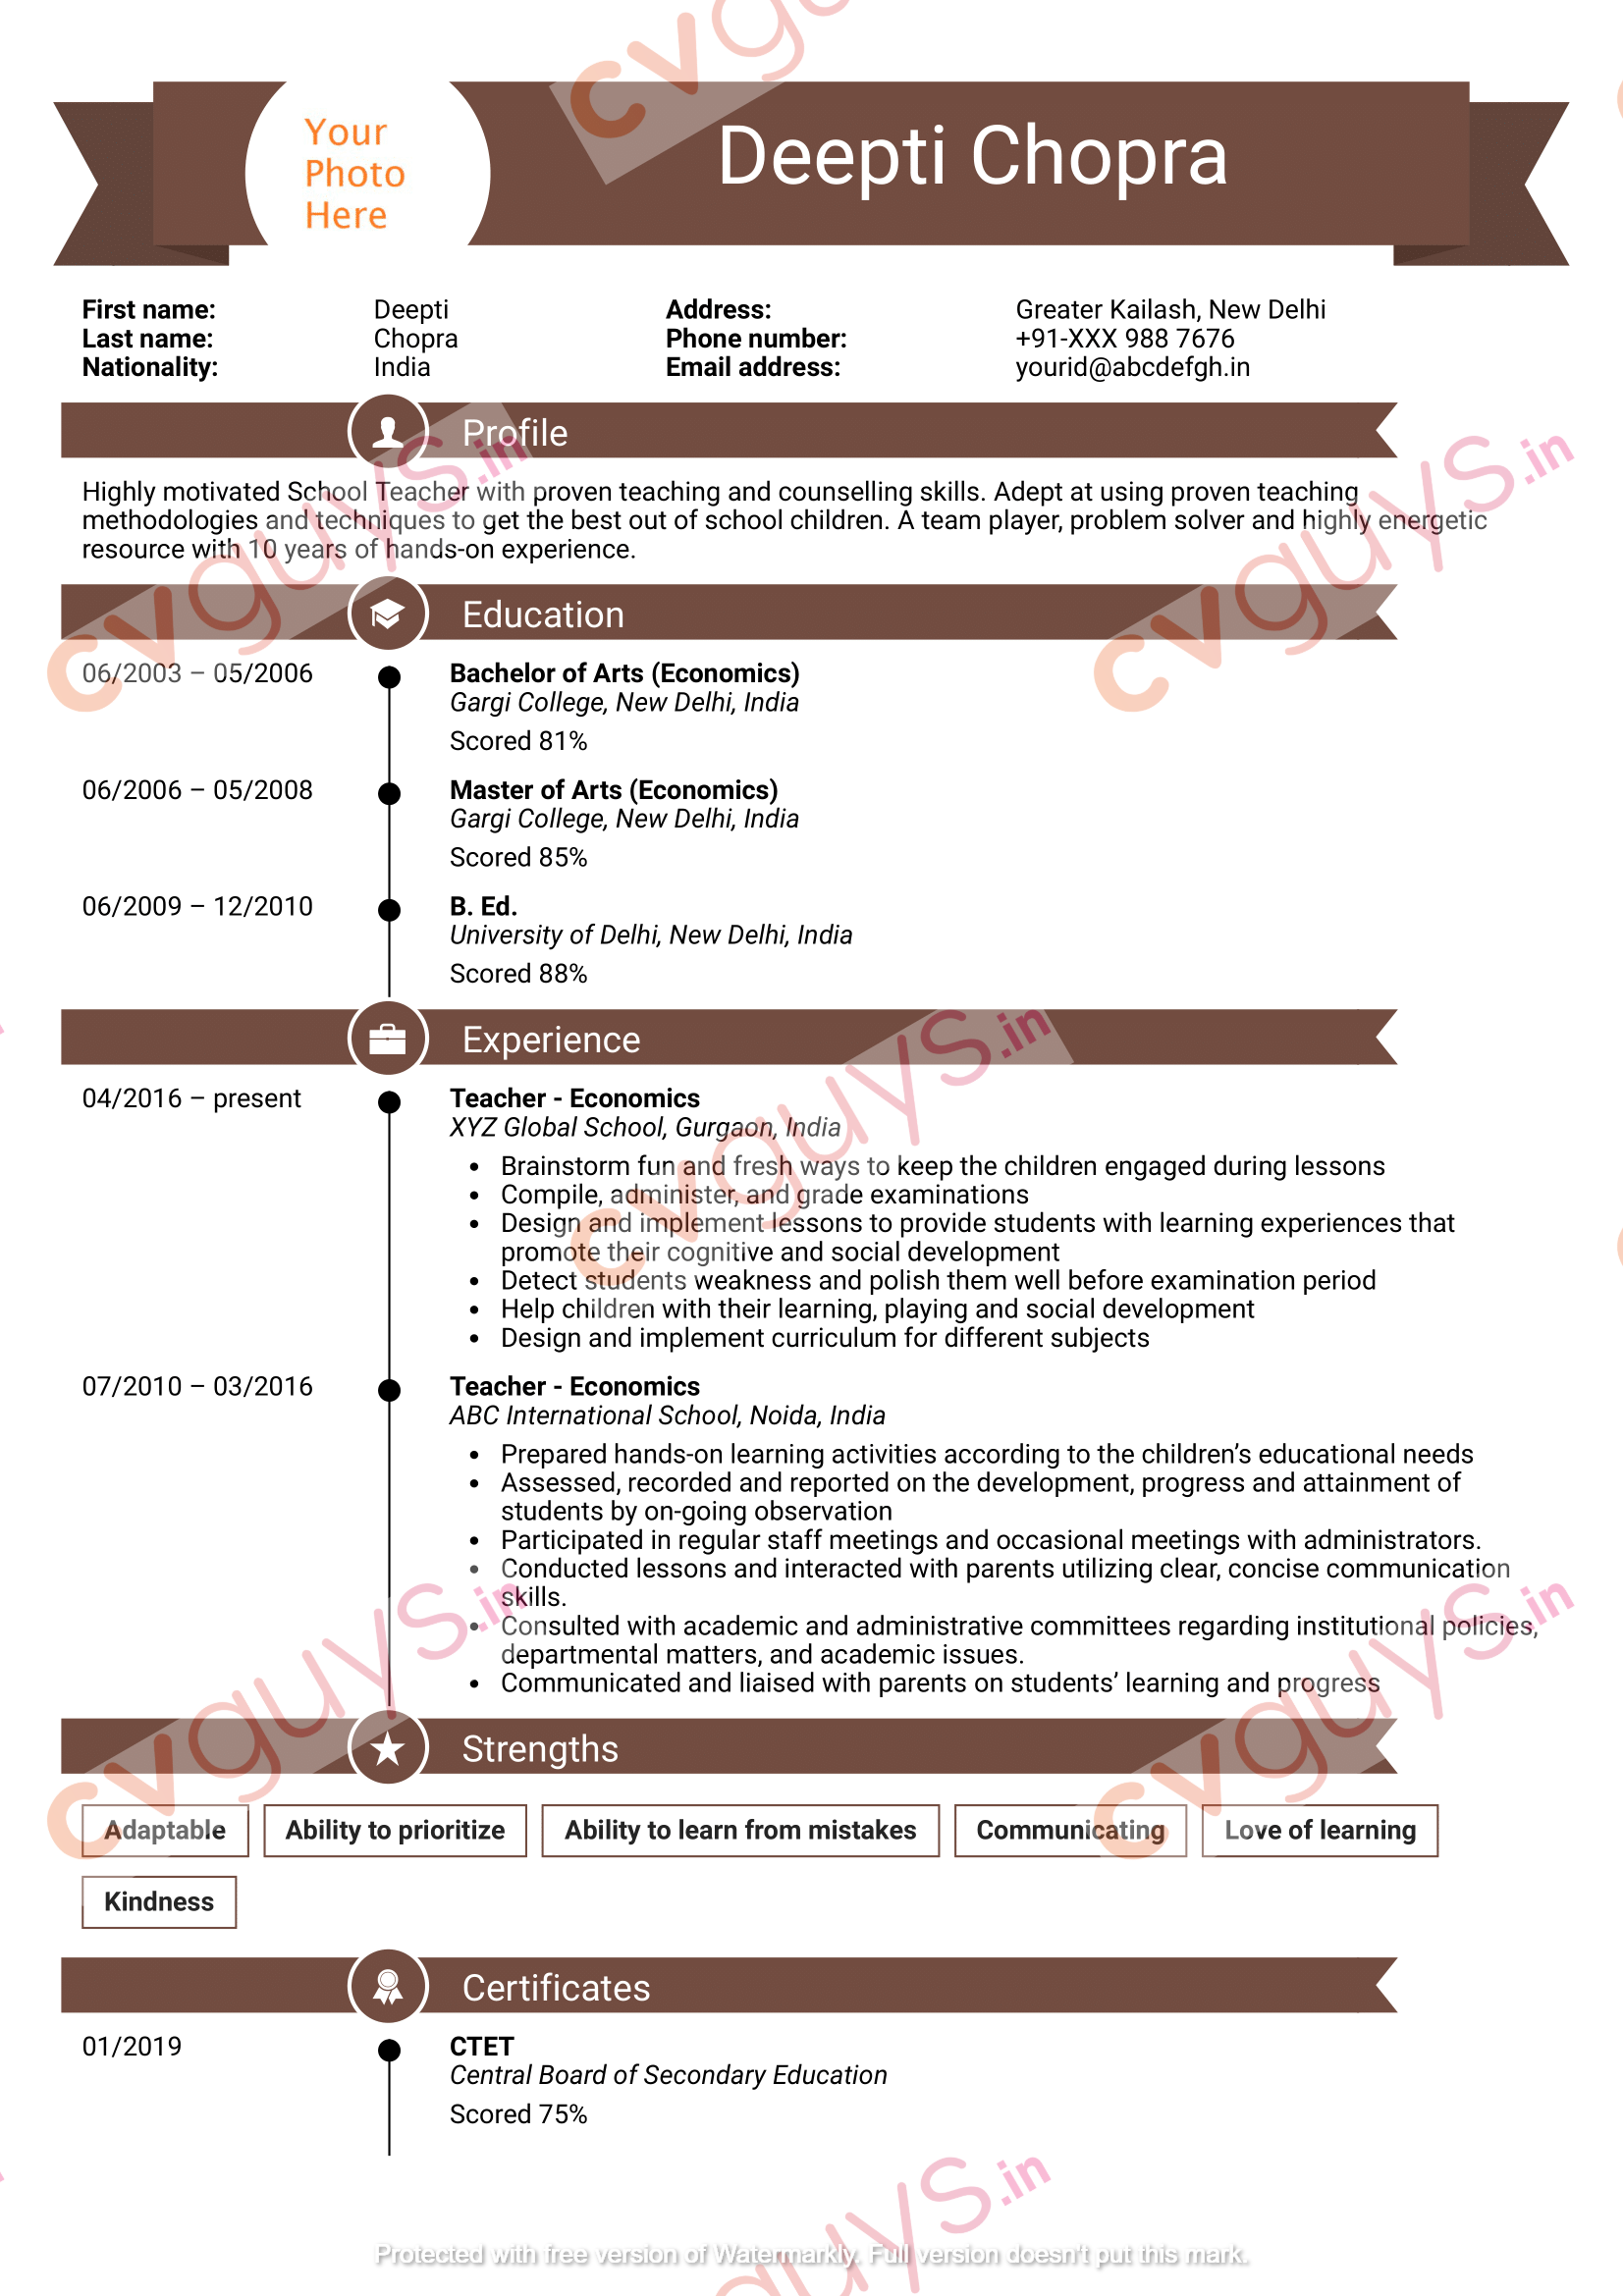 Experienced Teacher Resume Example by CVGUYS.IN